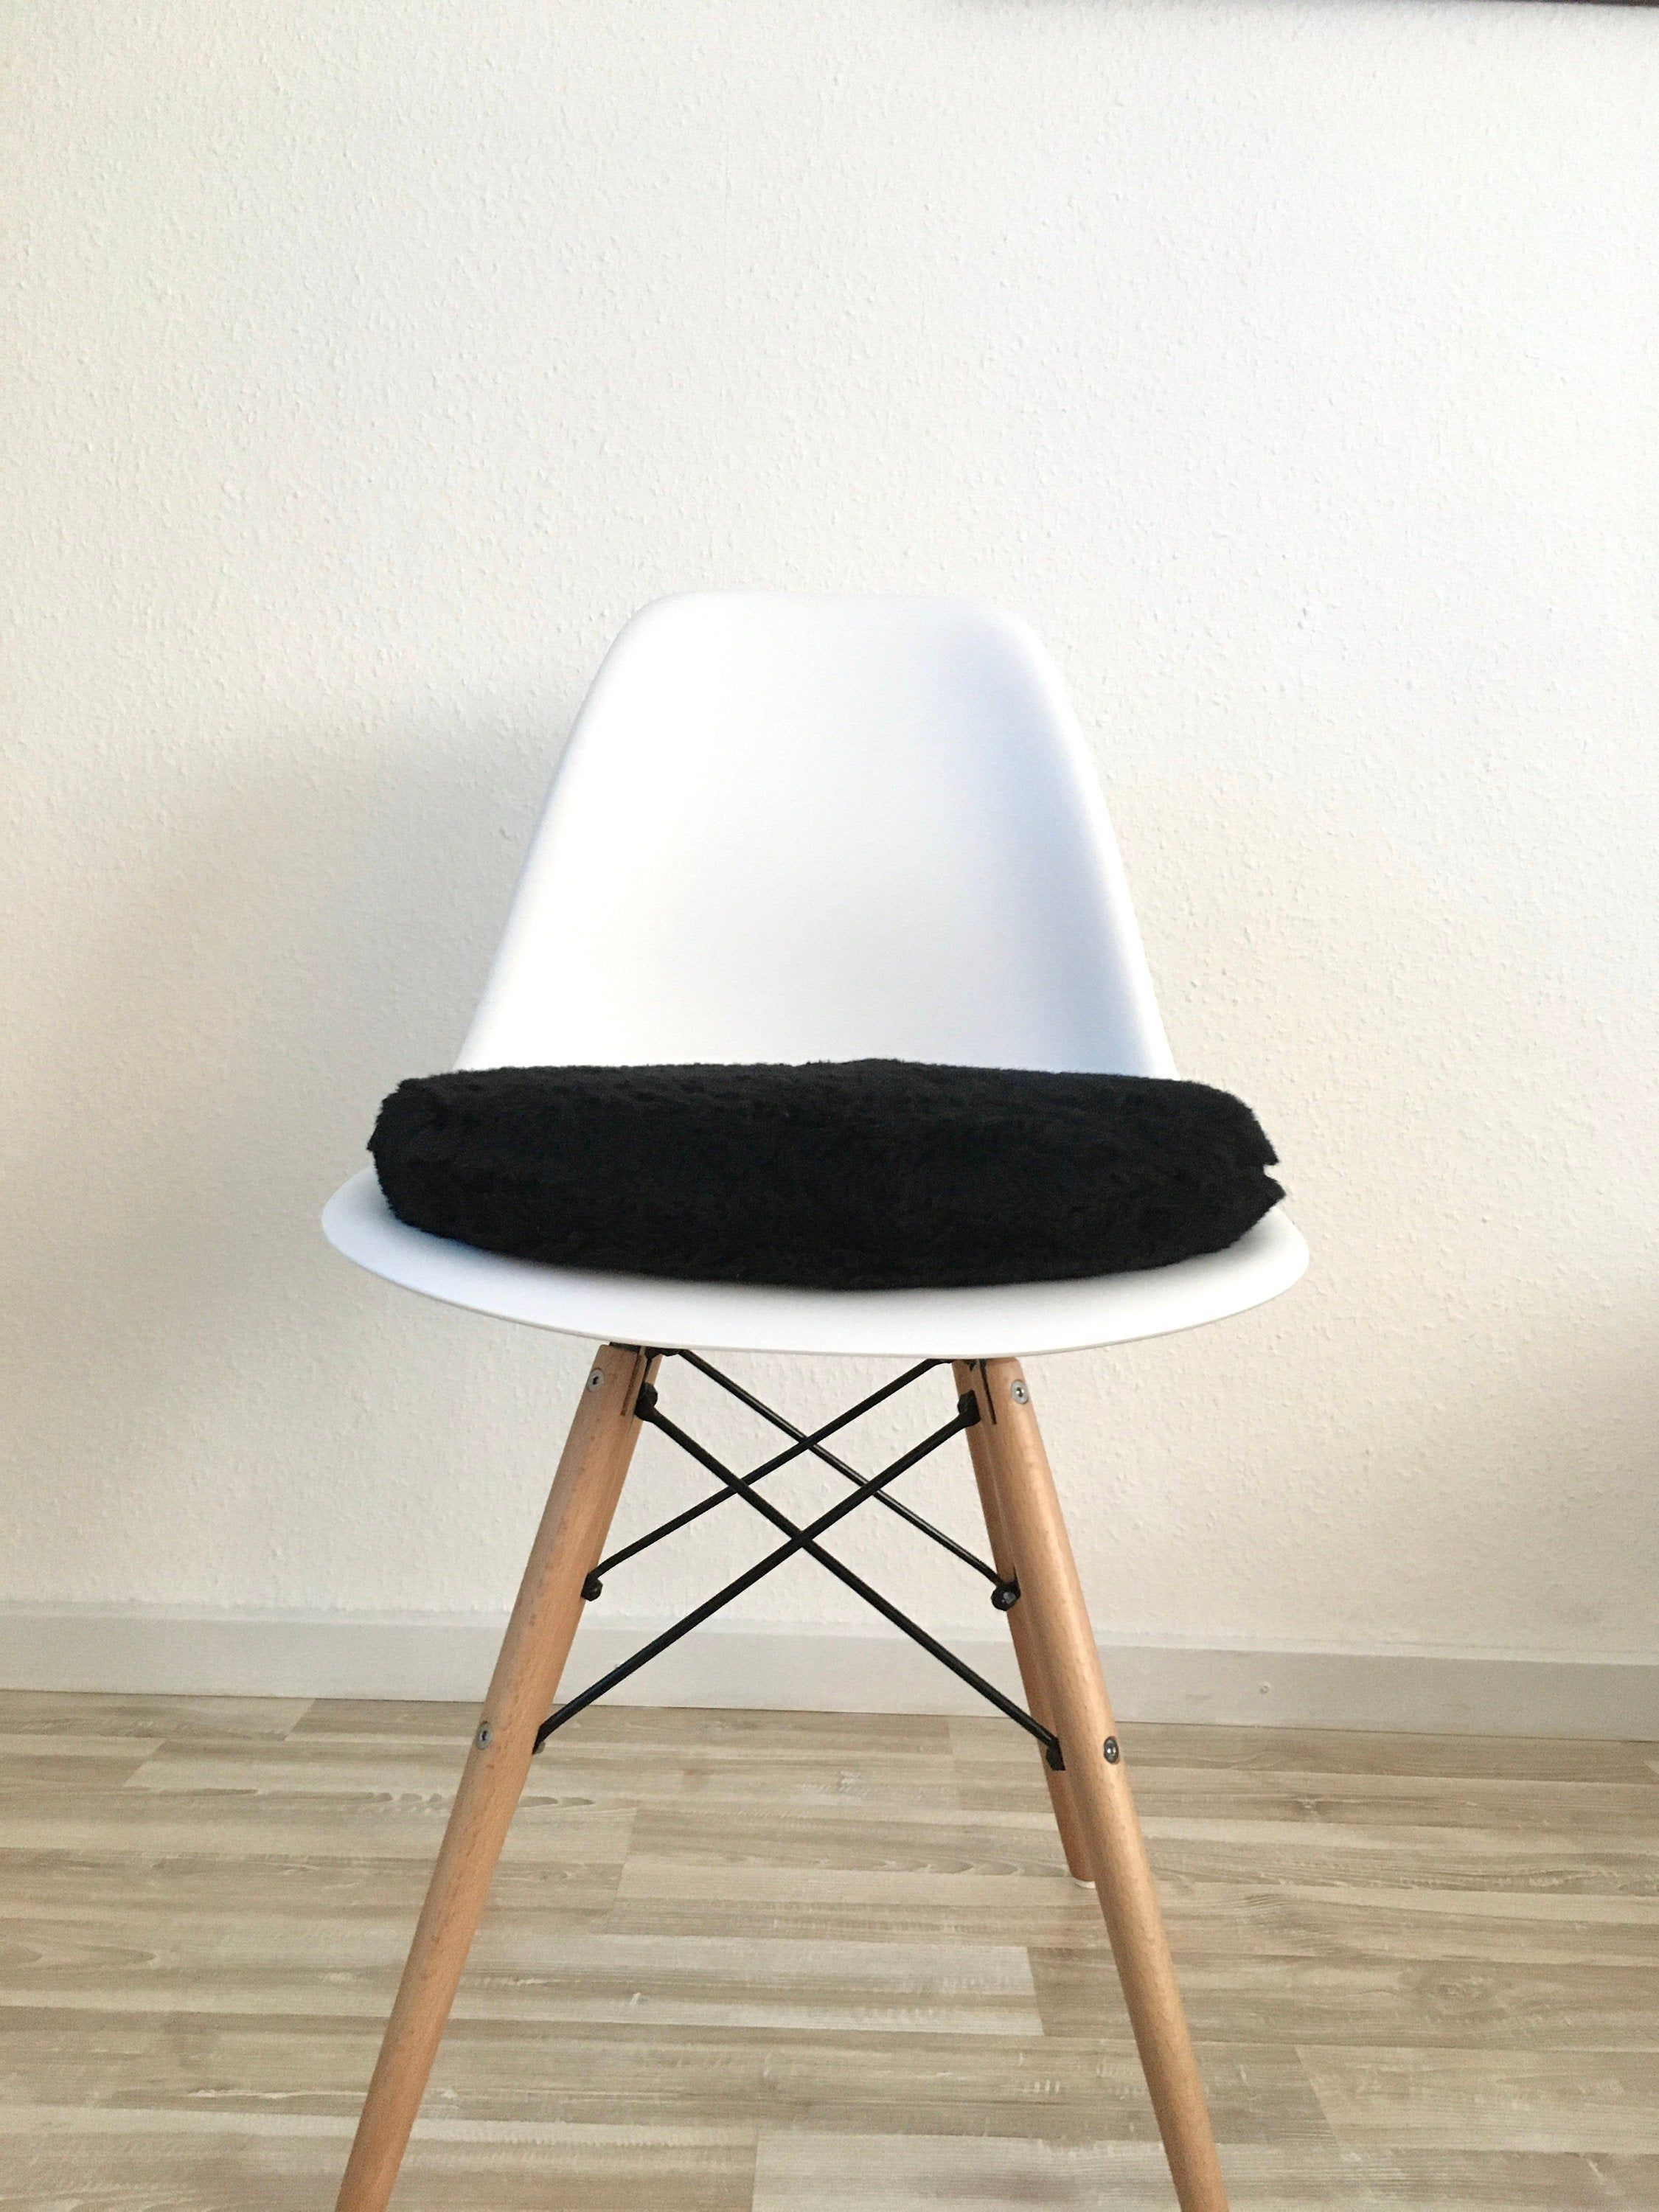 Sitzpolster In Schwarz 6 Cm Gepolstert Eames Chair Kissen Stuhlkissen In Schwarz Gepolstert Esszimmerstühle Eames Pad In 2020 Eames Dsw Decor Eames Chair